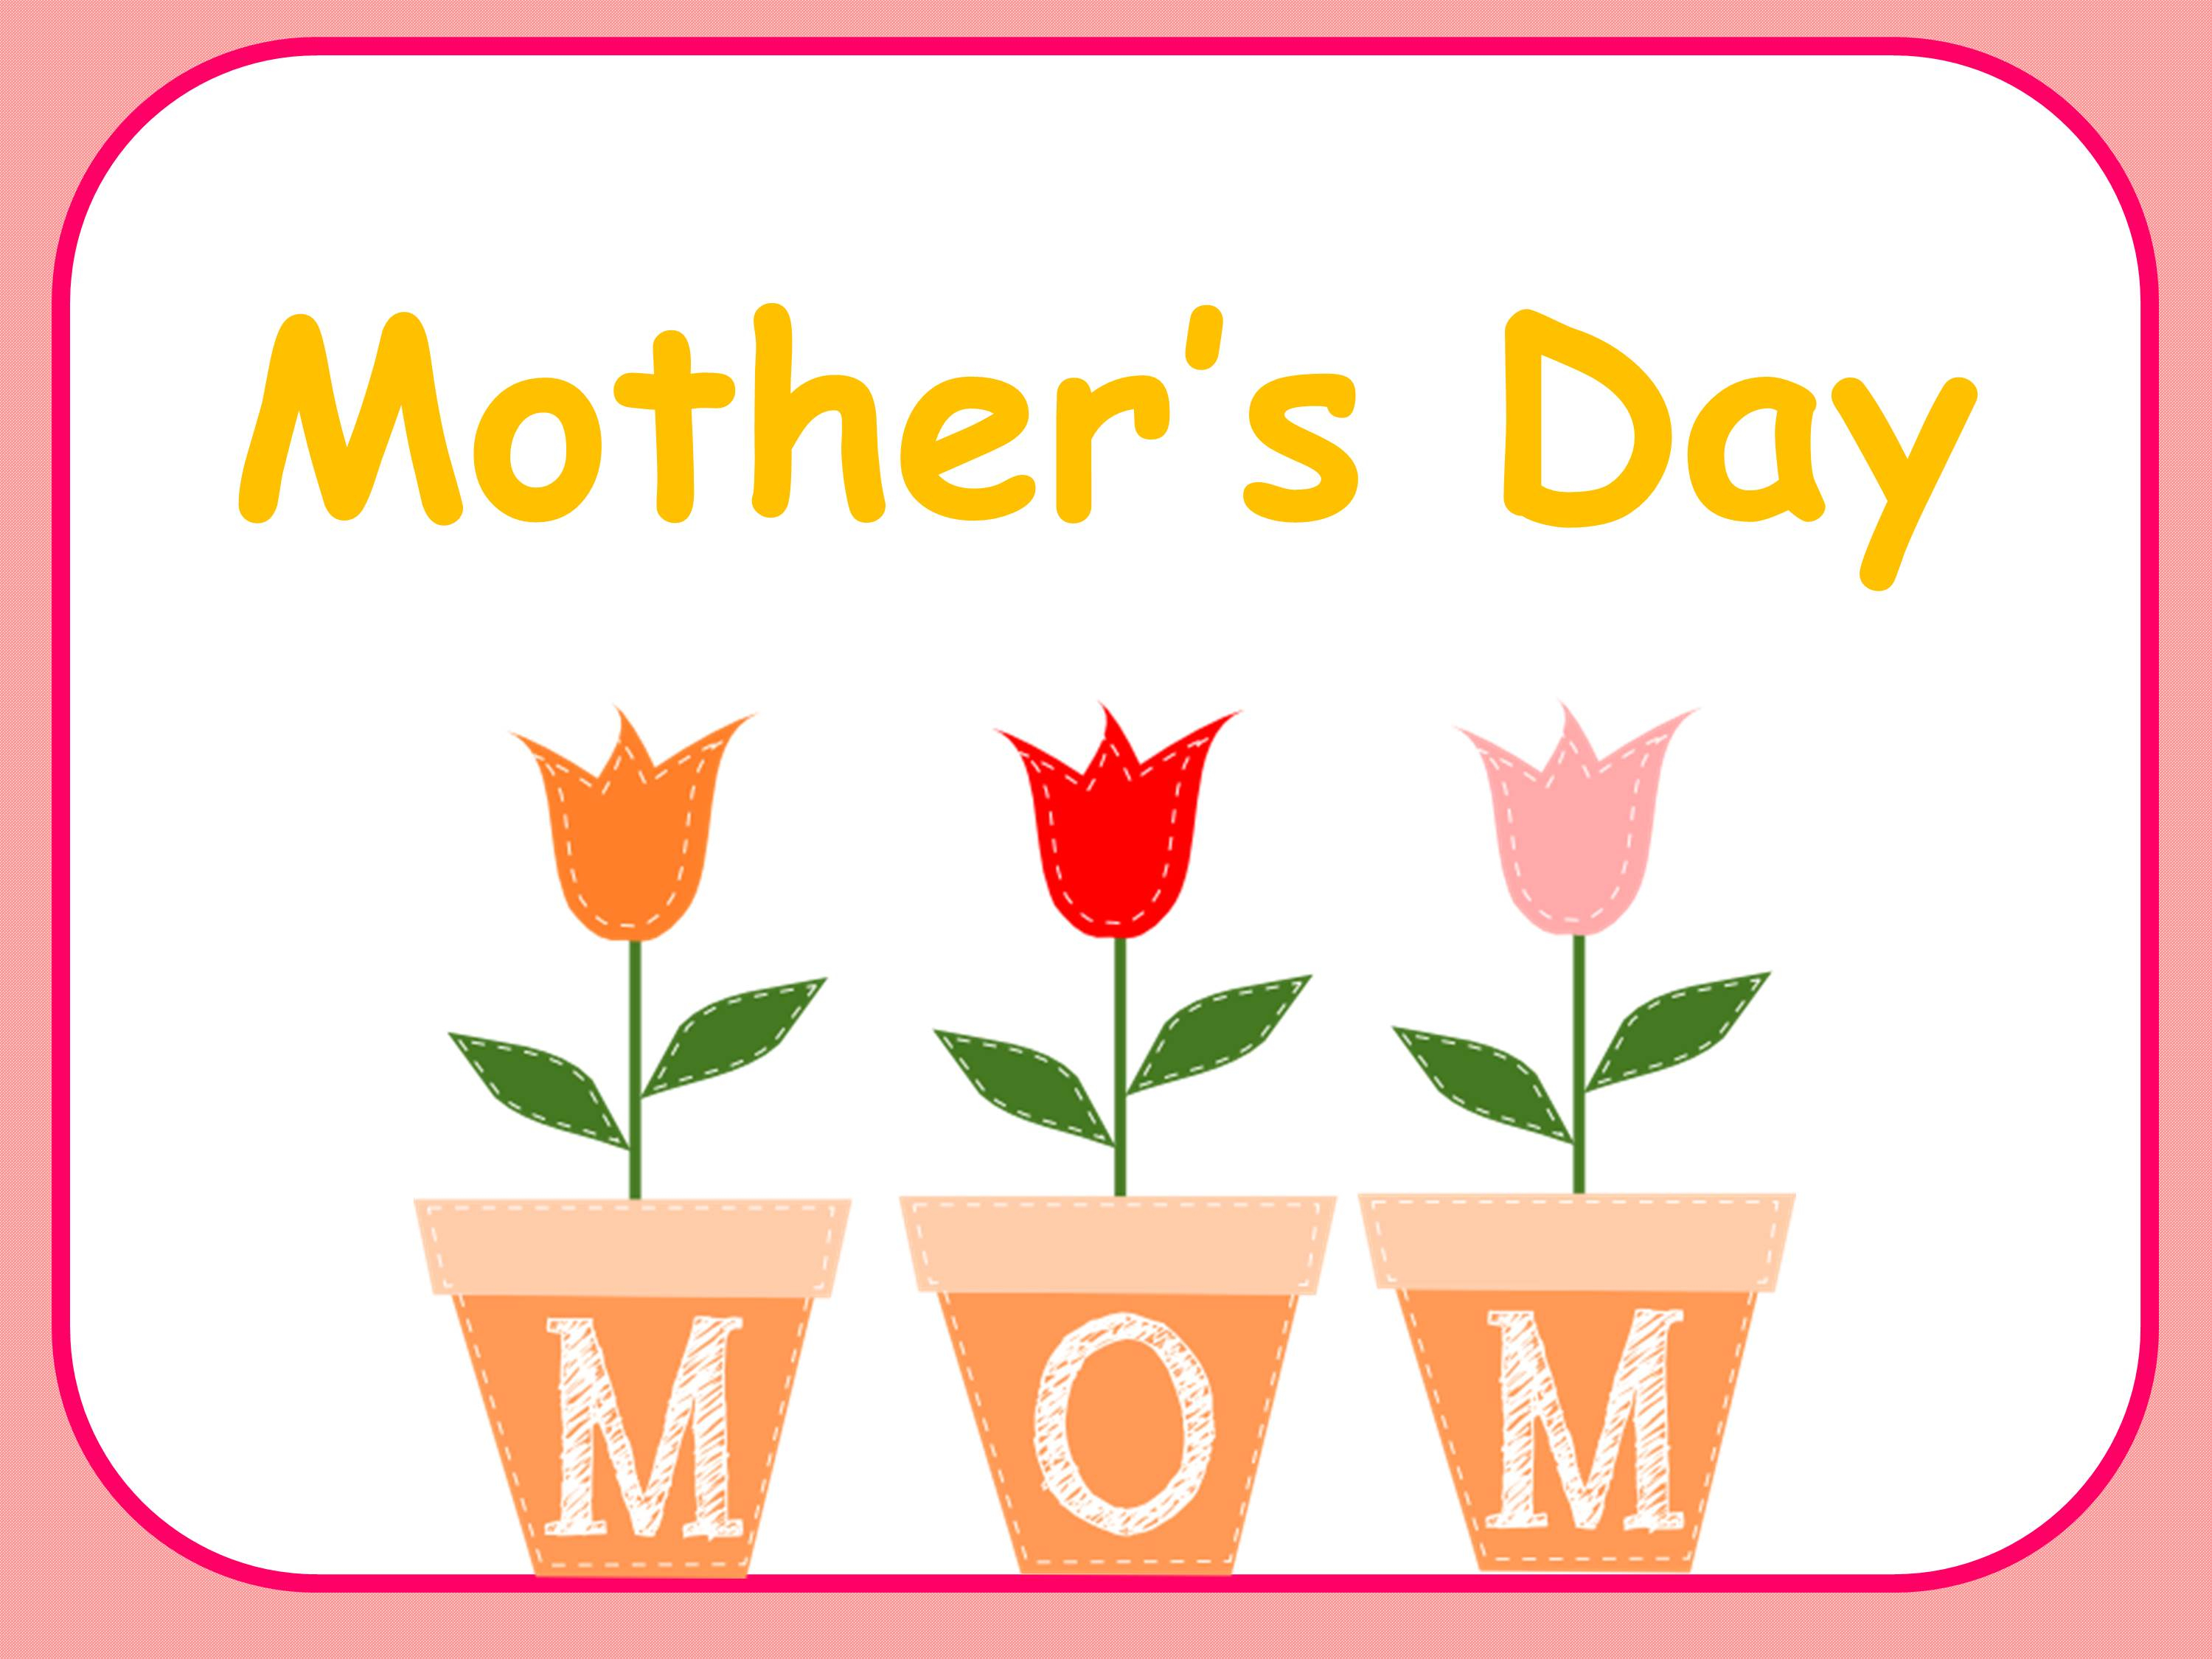 Mothers Day Clipart to download free.